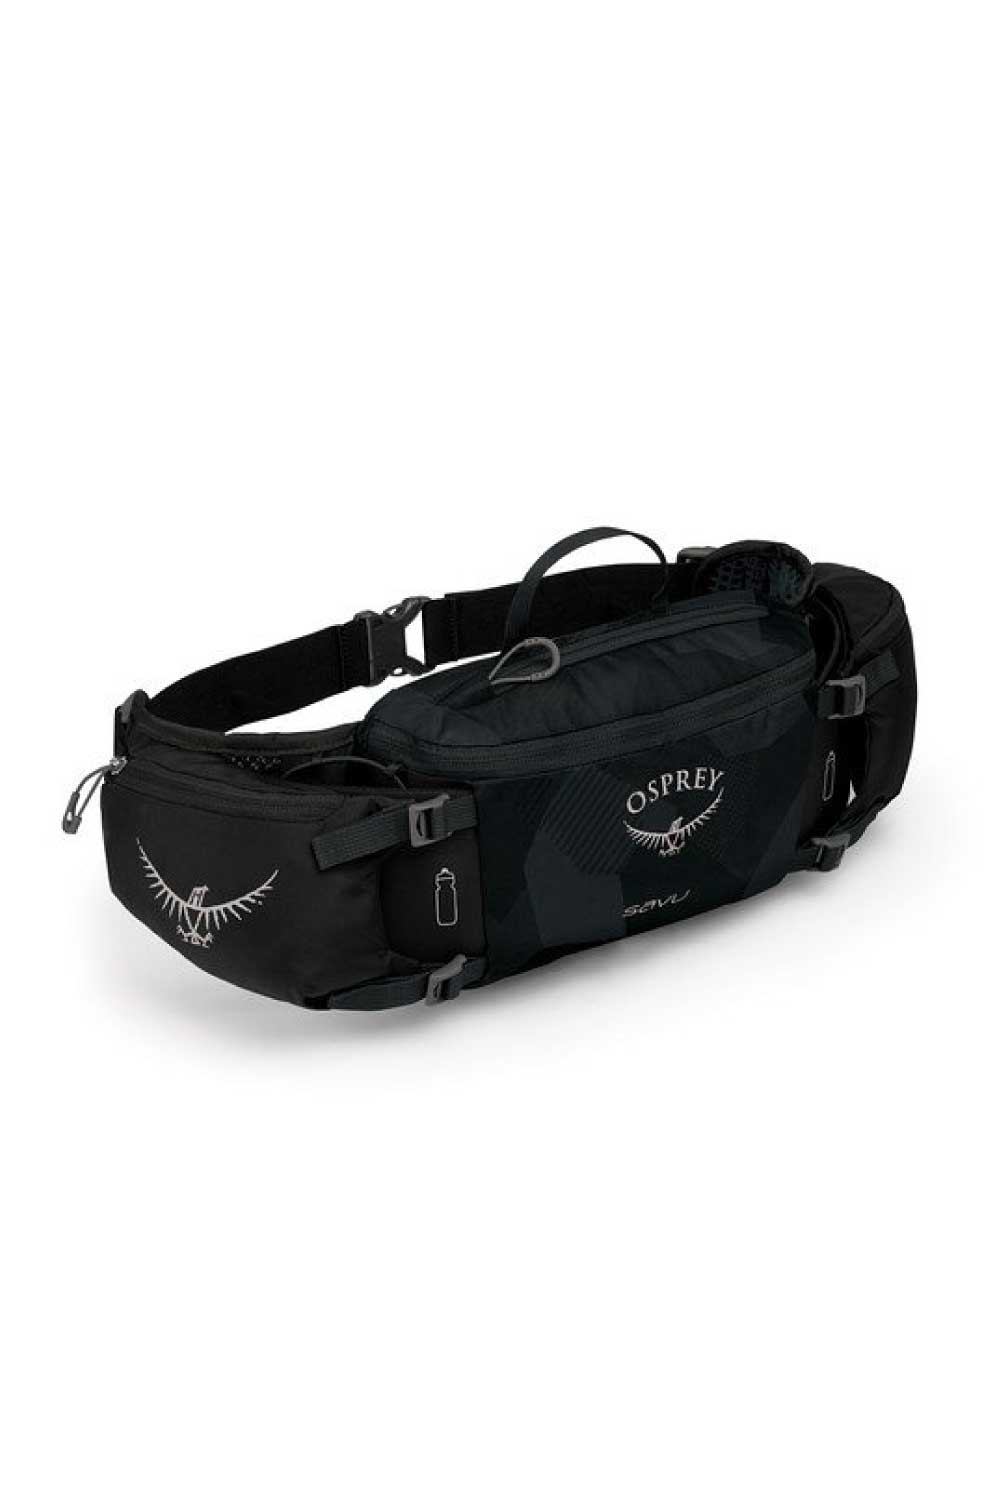 Osprey SAVU Mountain Bike Hip Pack Bag